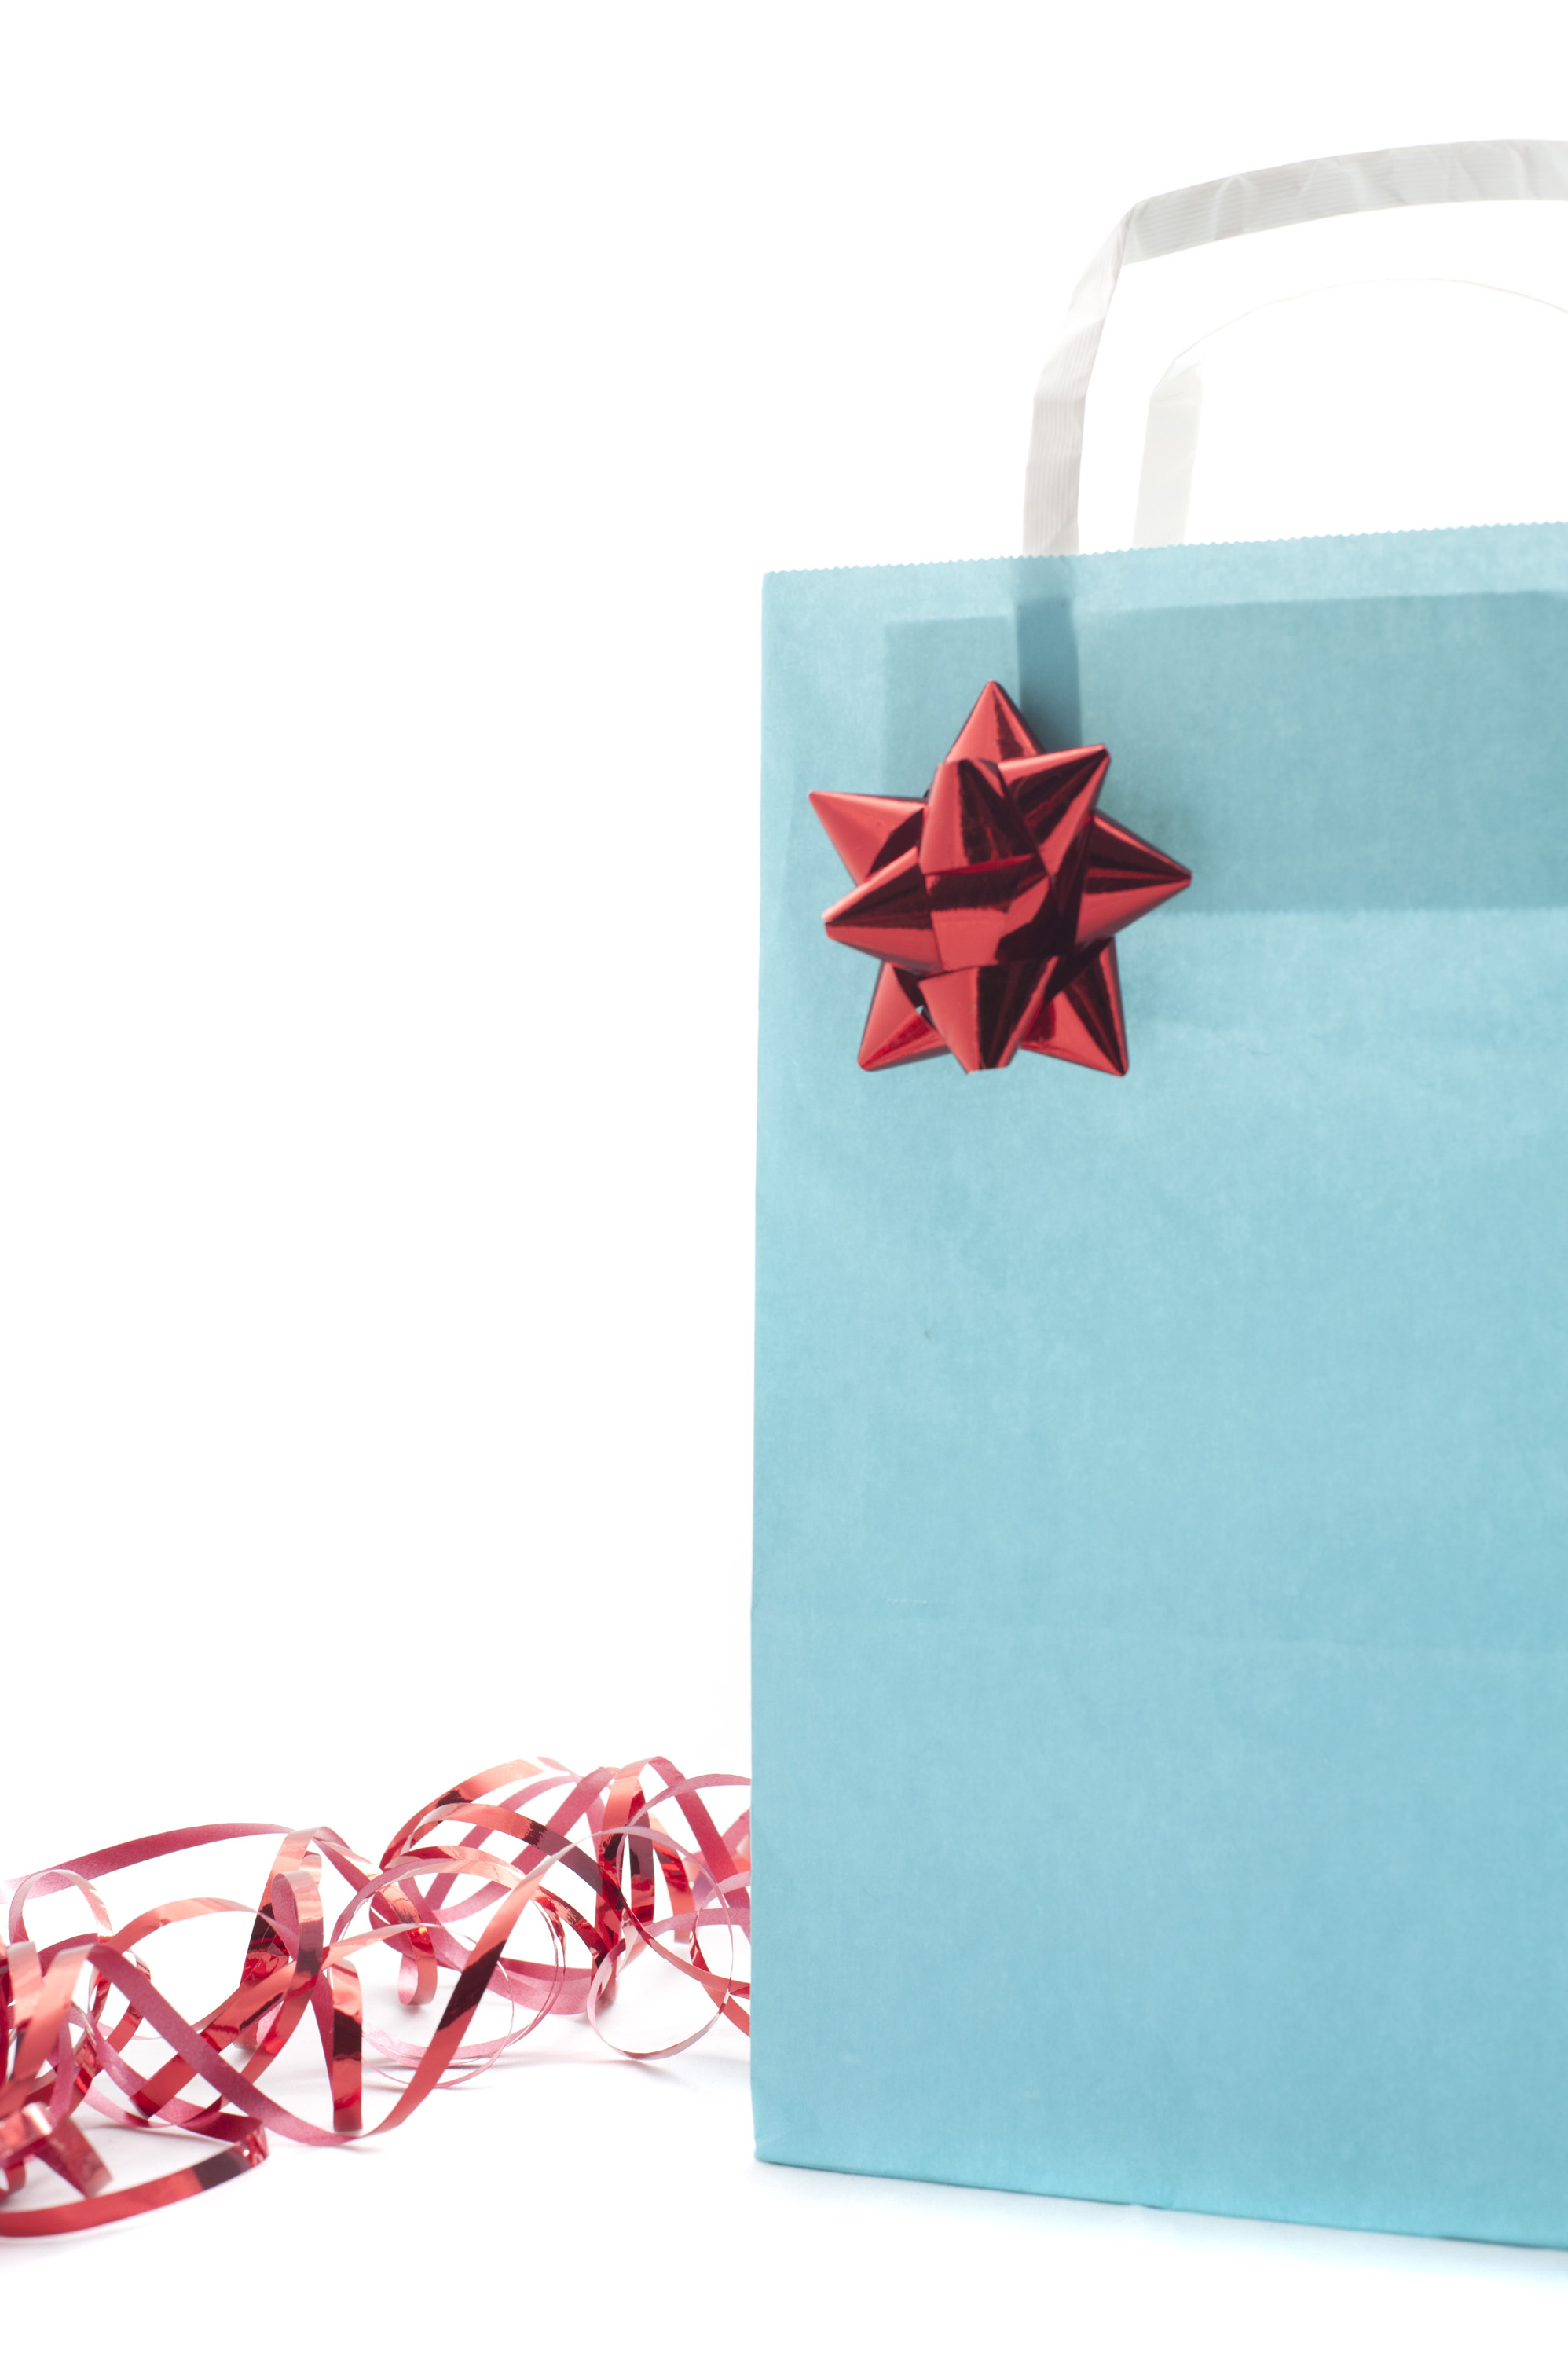 Decorated blue gift bag with an ornamental red bow and ribbon to celebrate a special occasion with a loved one isolated on white, close up view